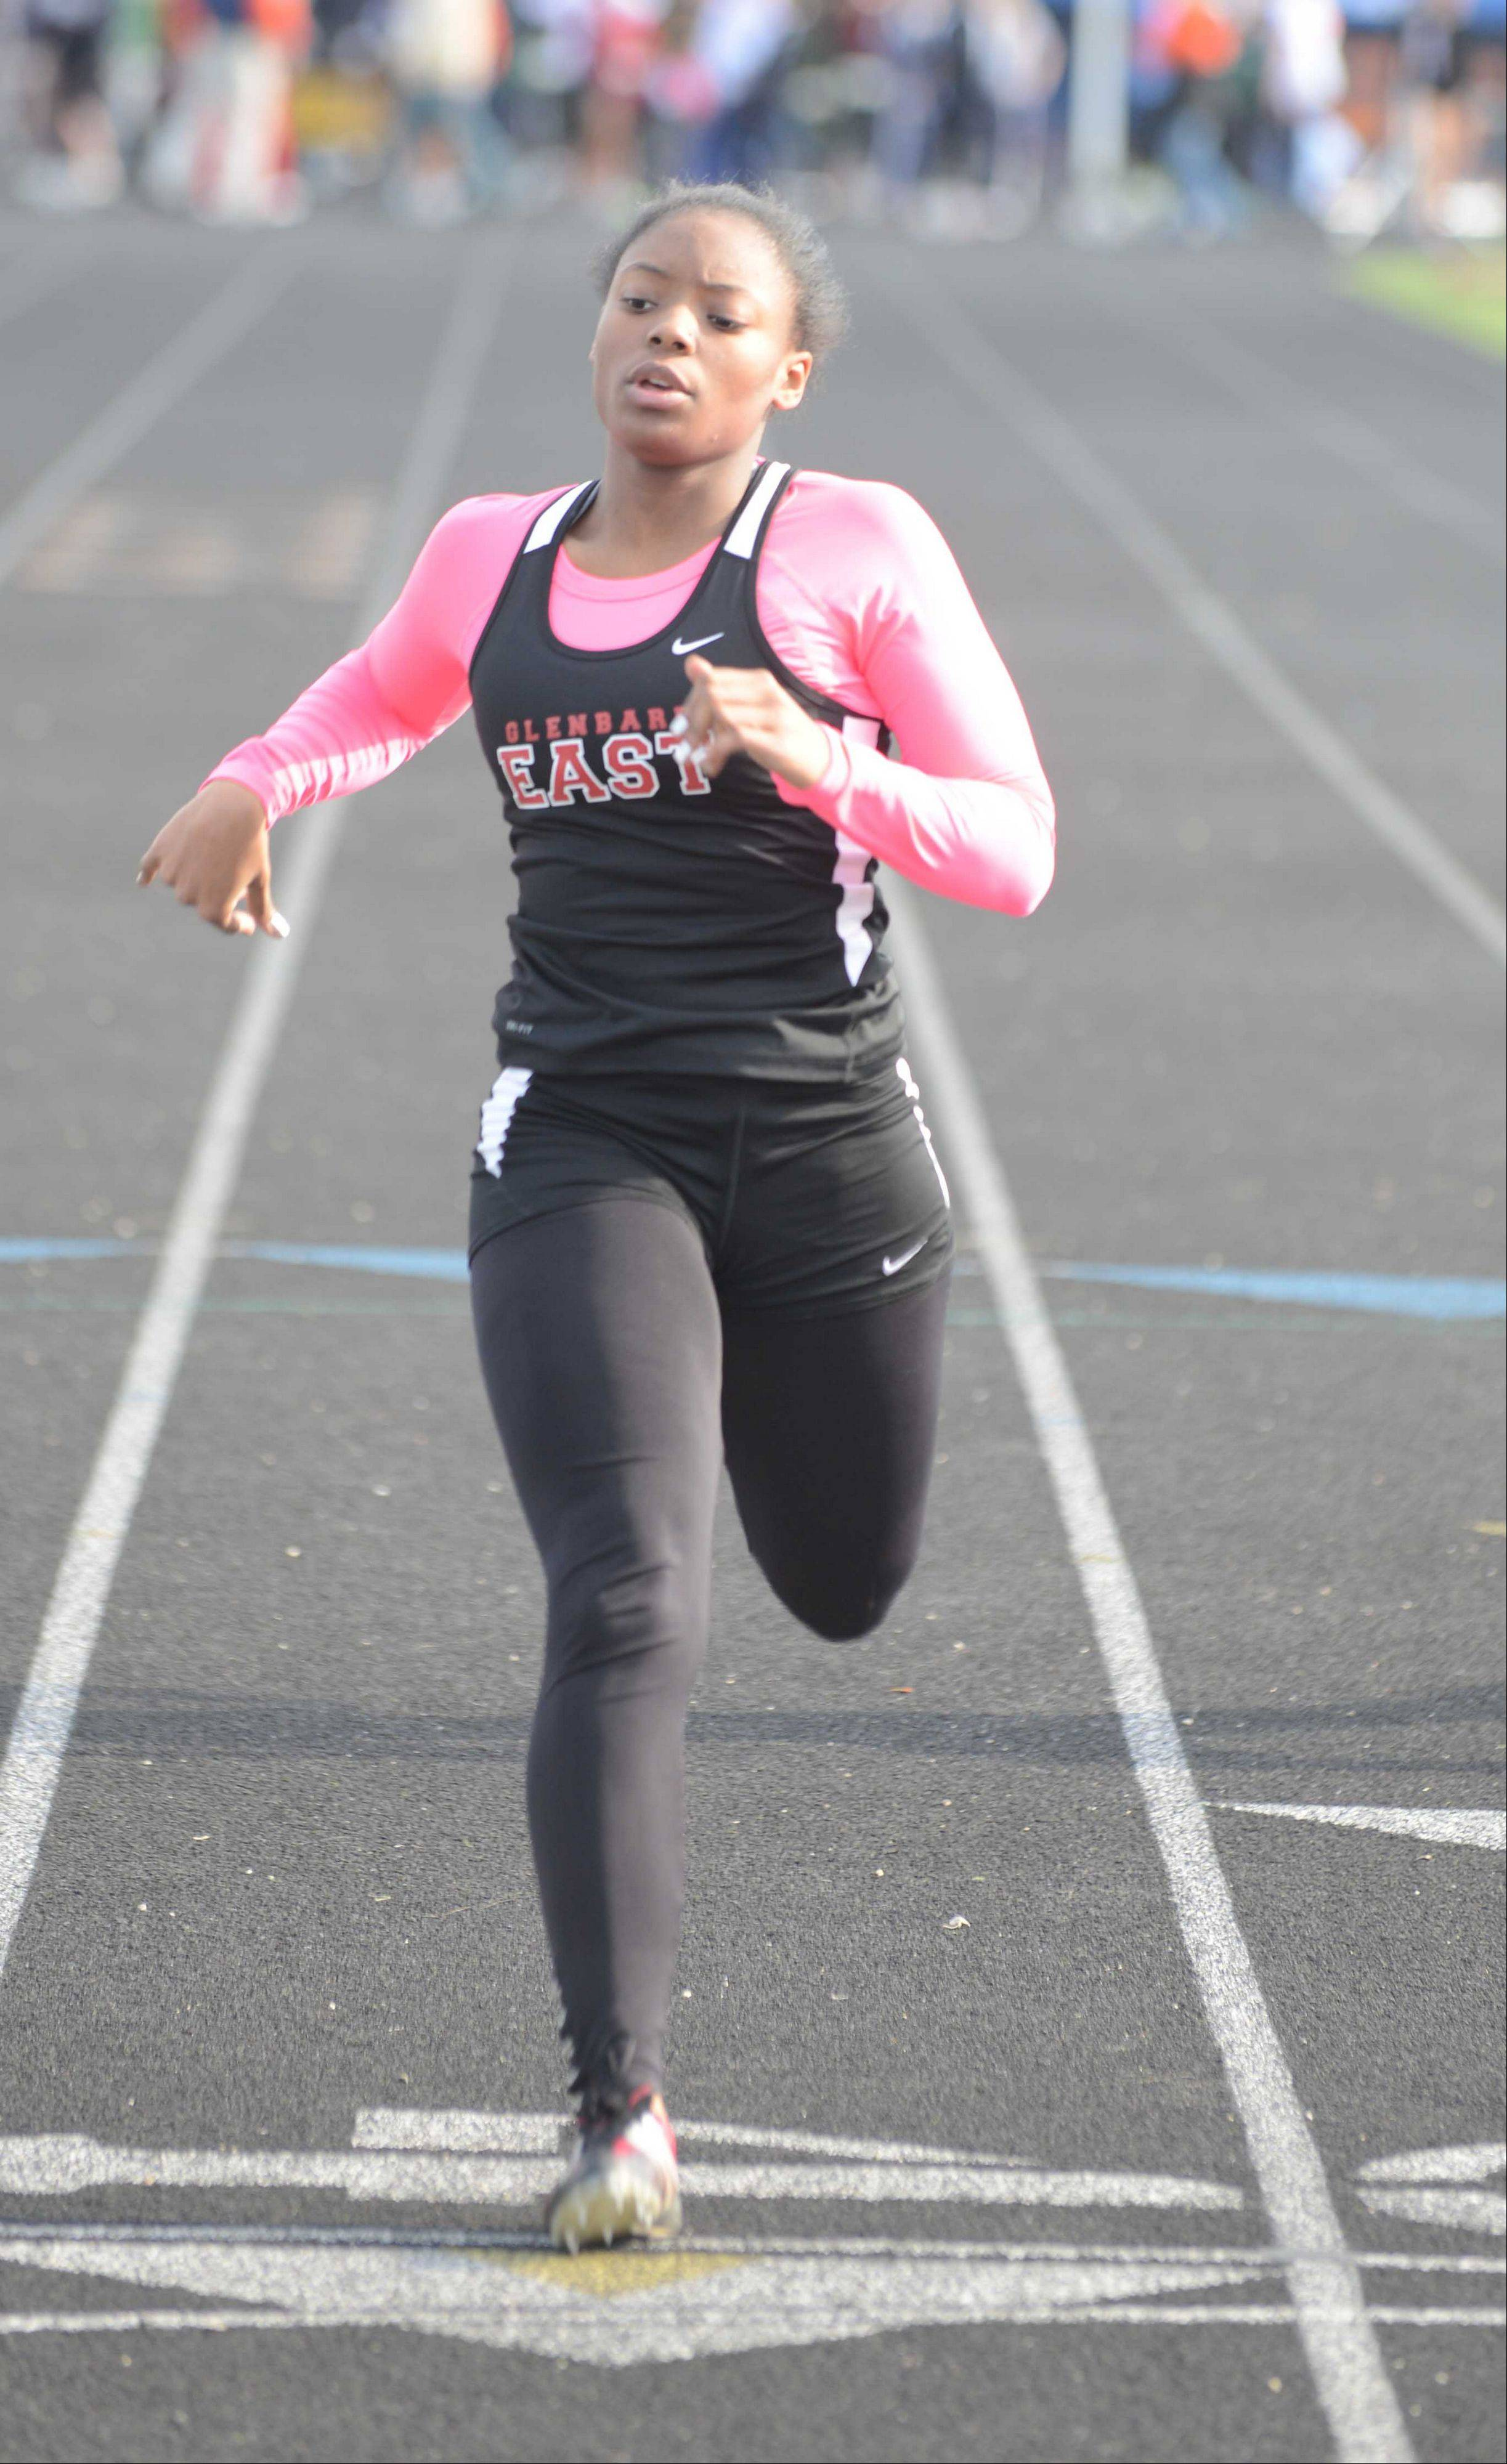 Darian Wellington of Glenbard East takes part in the 100 meter dash during the Wheaton Warrenville South girls track meet Friday.